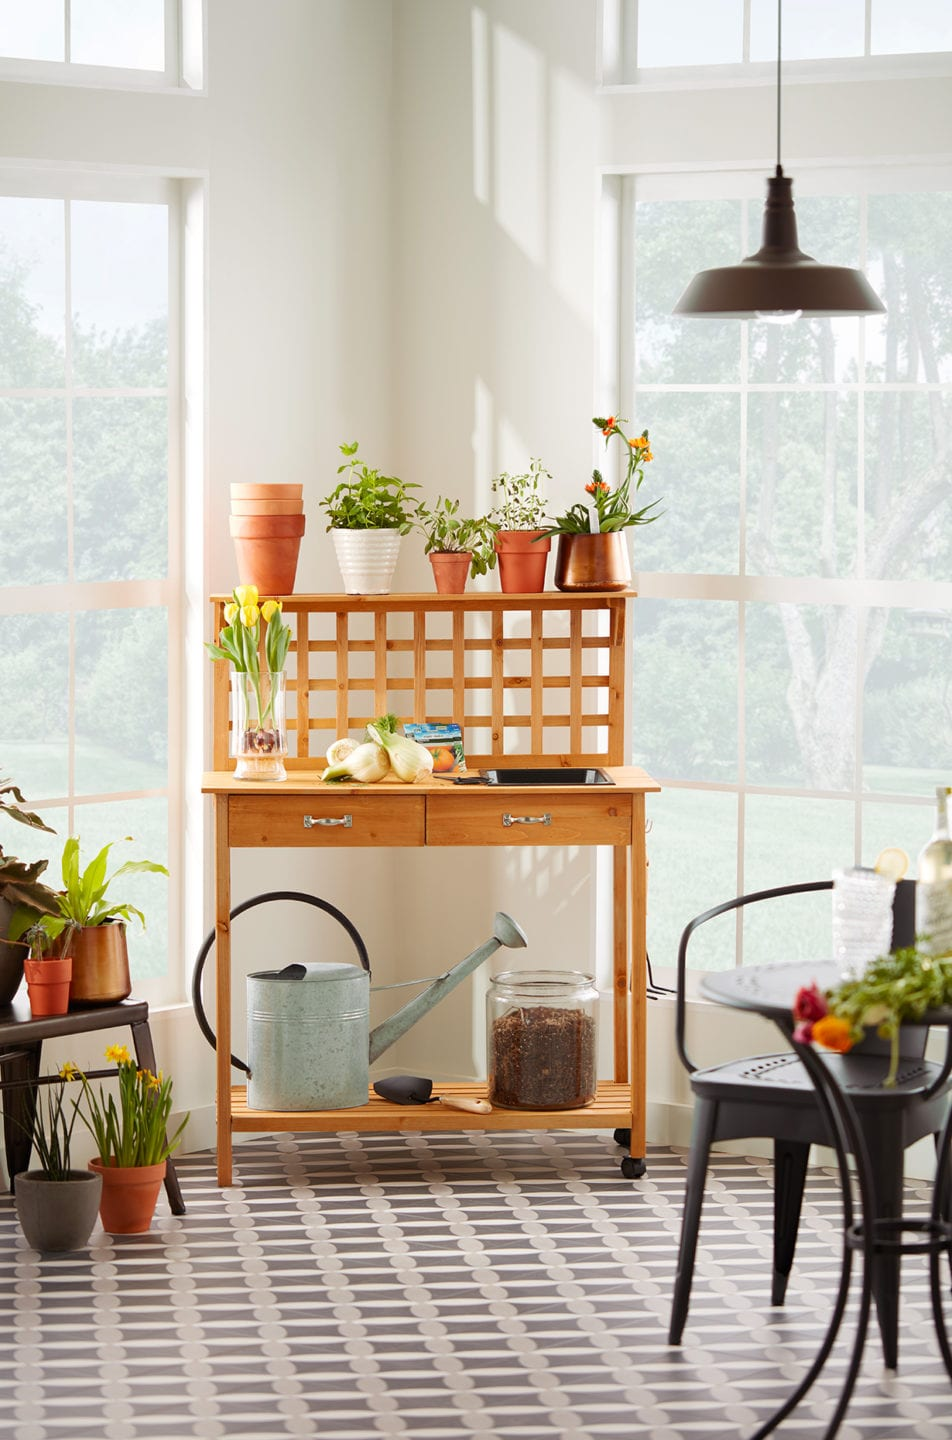 Sunroom decorated as a garden and potting room.